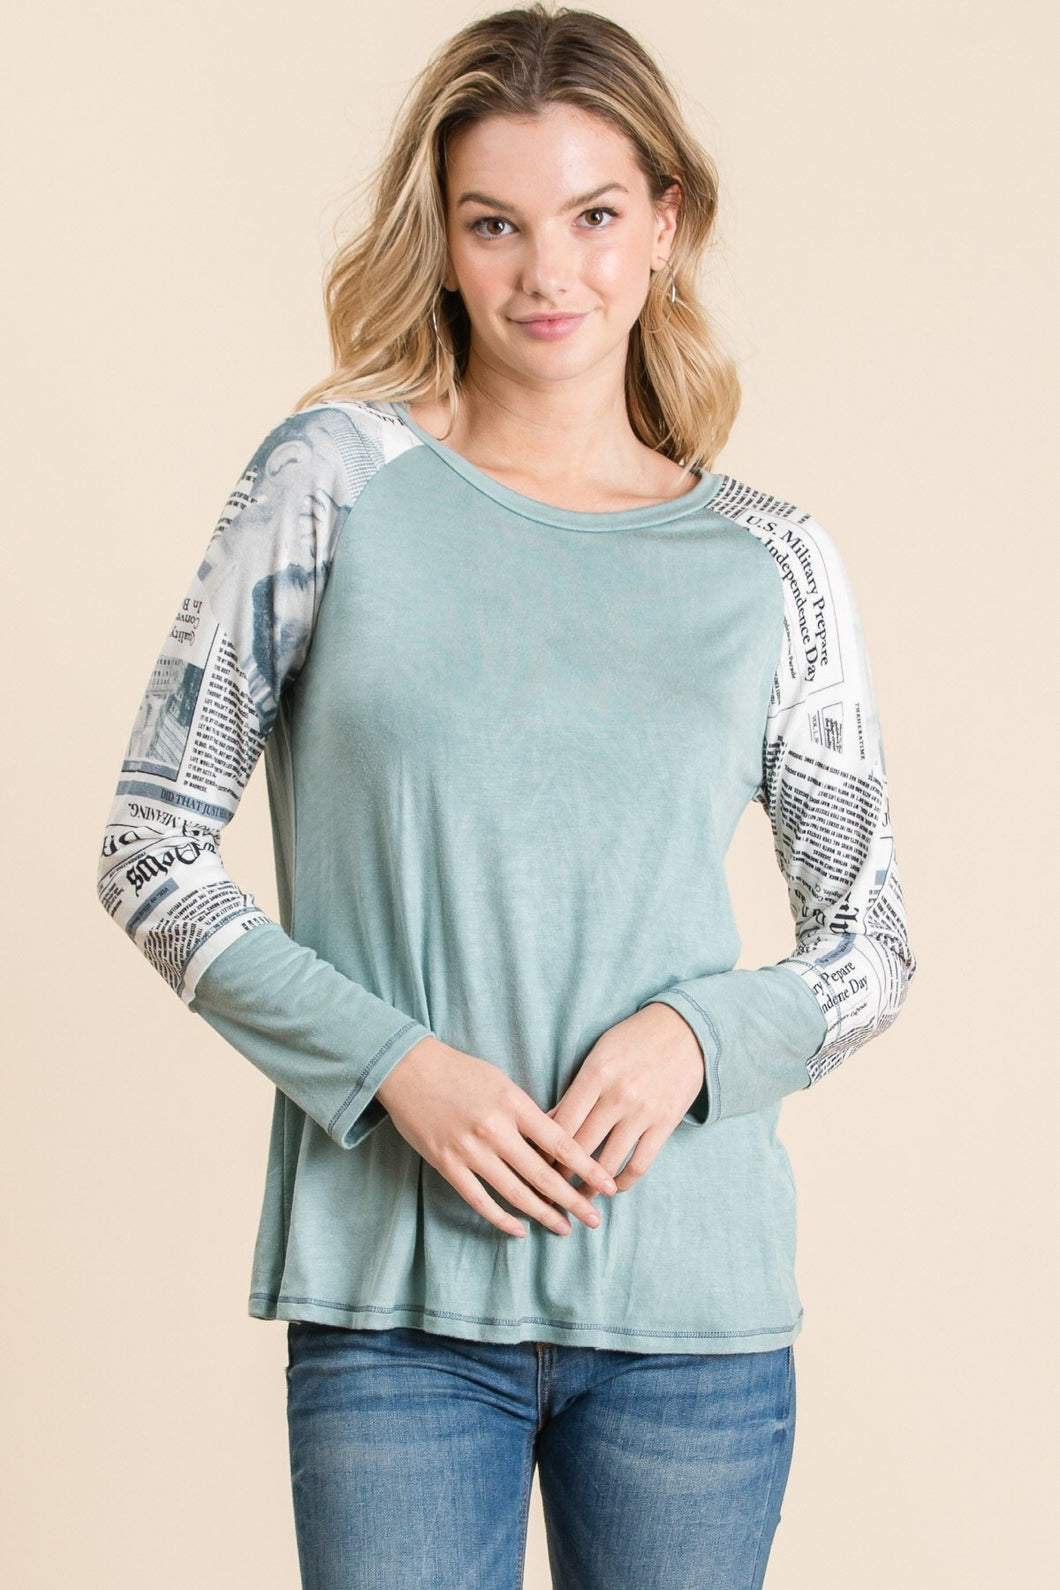 Soft Headlines Long Sleeve Top